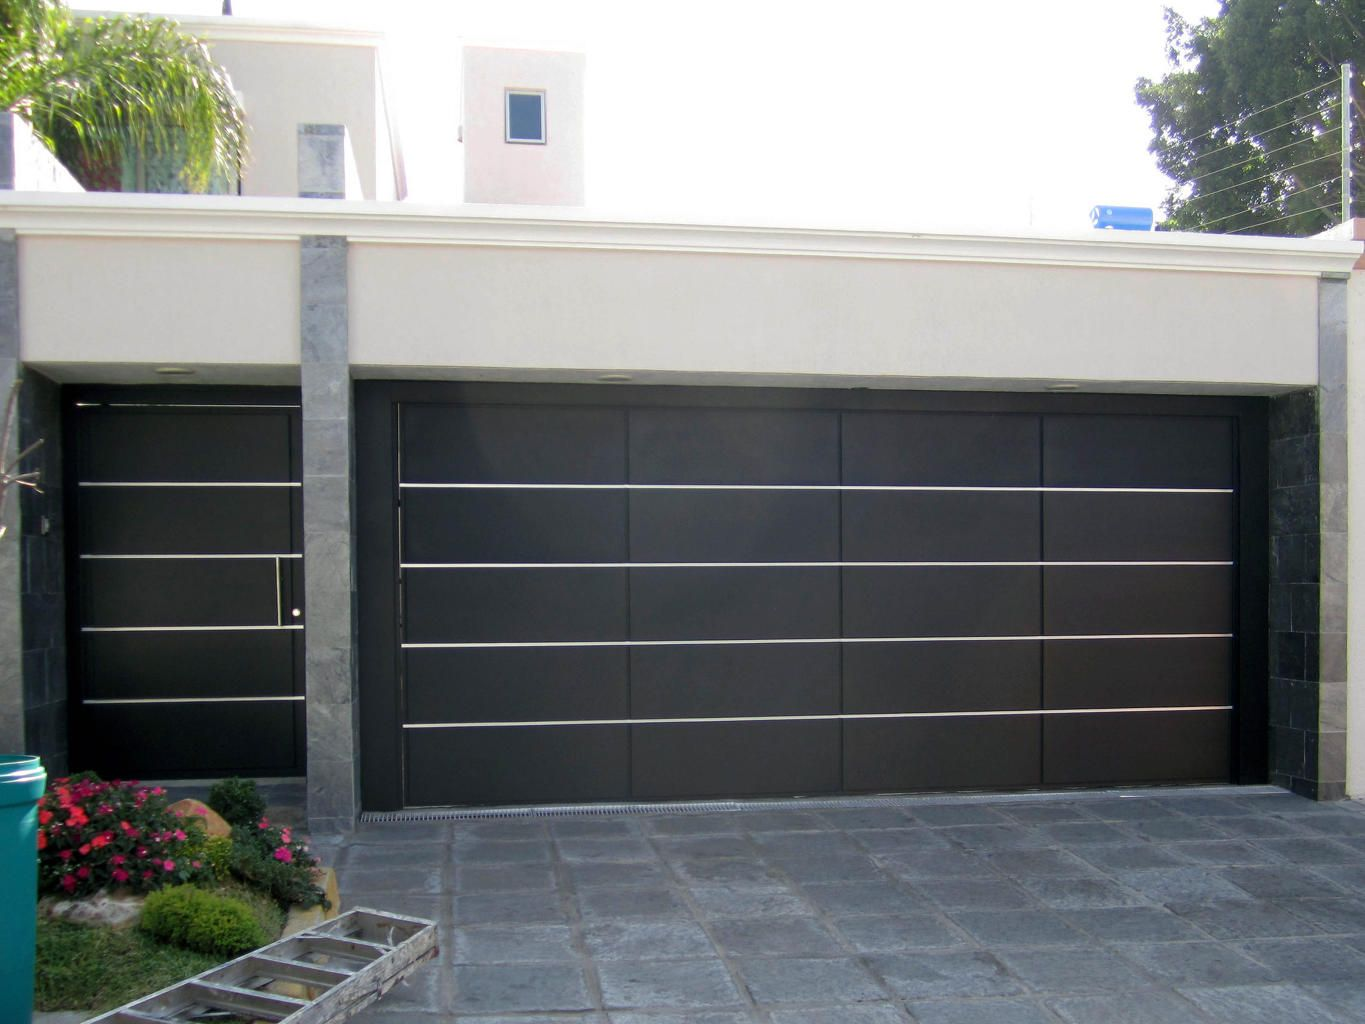 Decorating garage man door images : Modern Garage Door and Gates http://www.pinterest.com/avivbeber3 ...